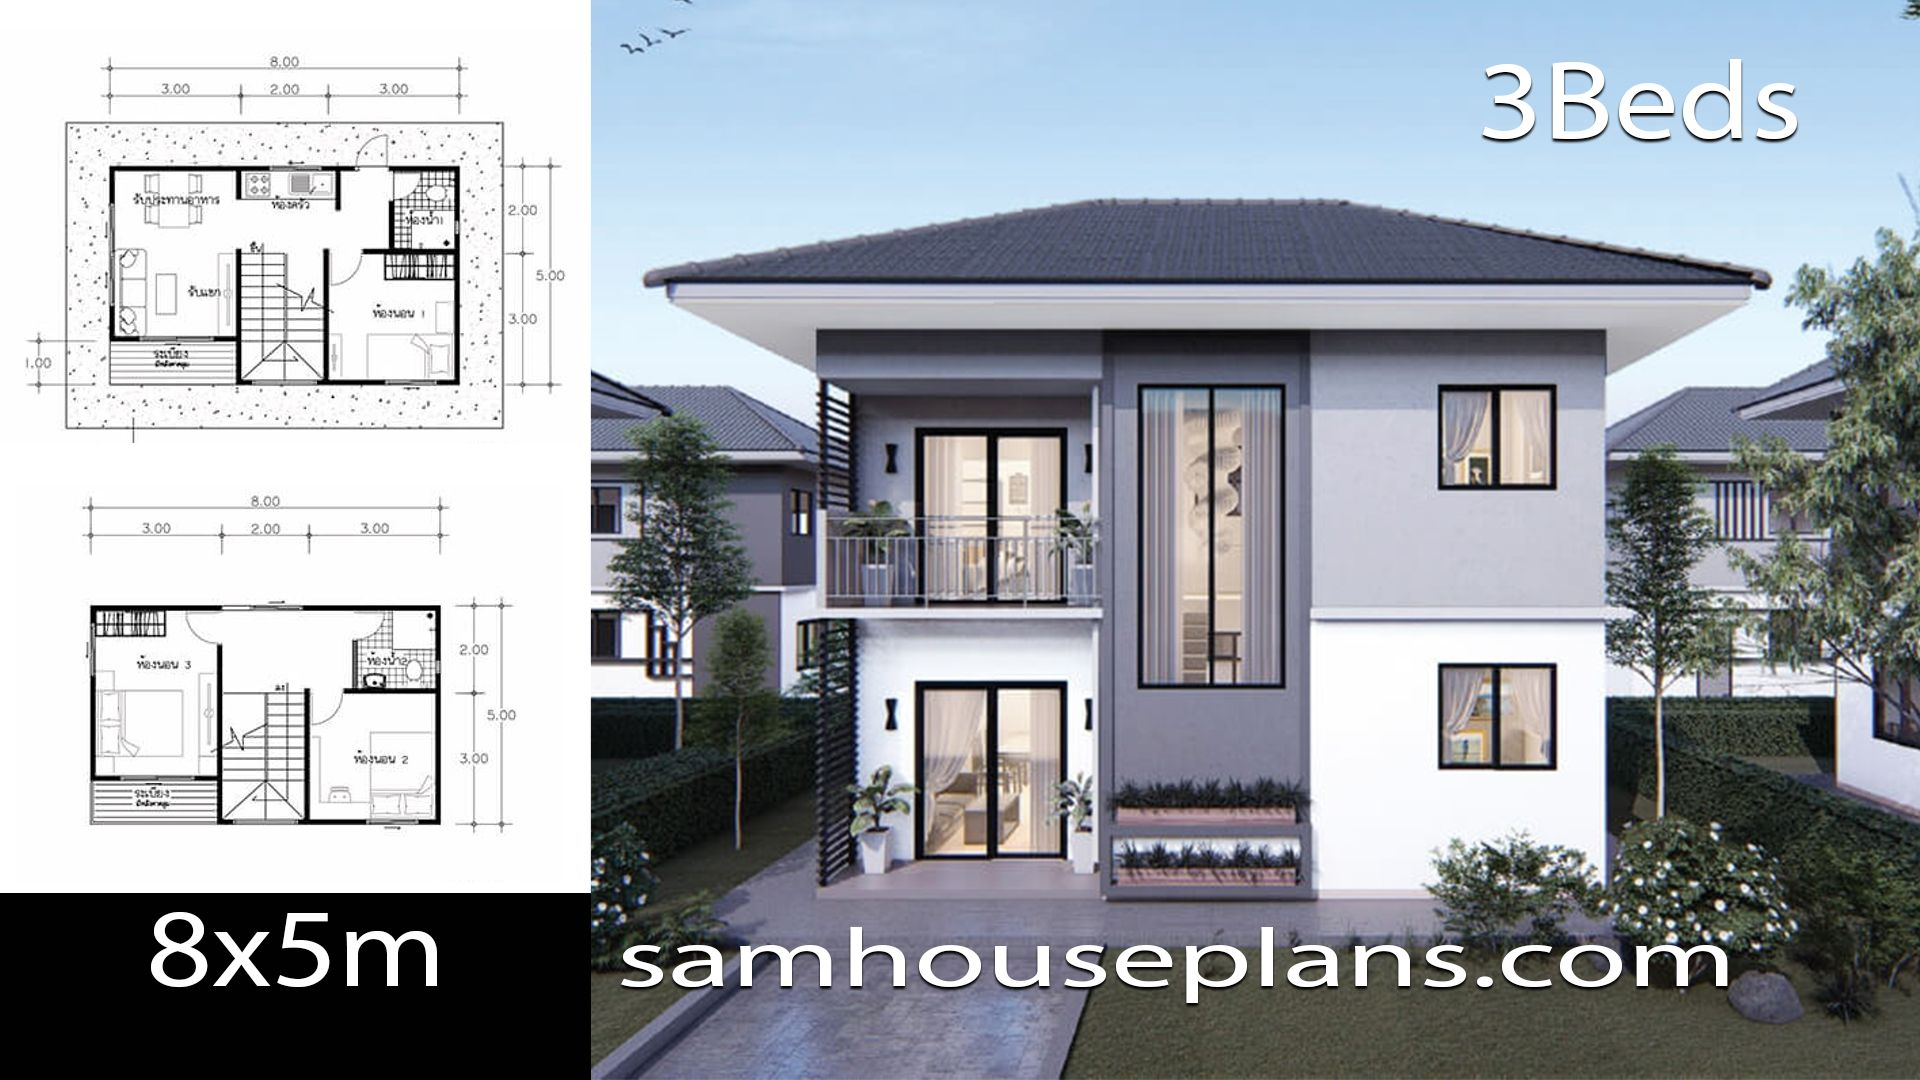 House Plans Idea 8x5 With 3 Bedrooms Sam House Plans In 2020 House Plans Building Plans House Modern House Plans